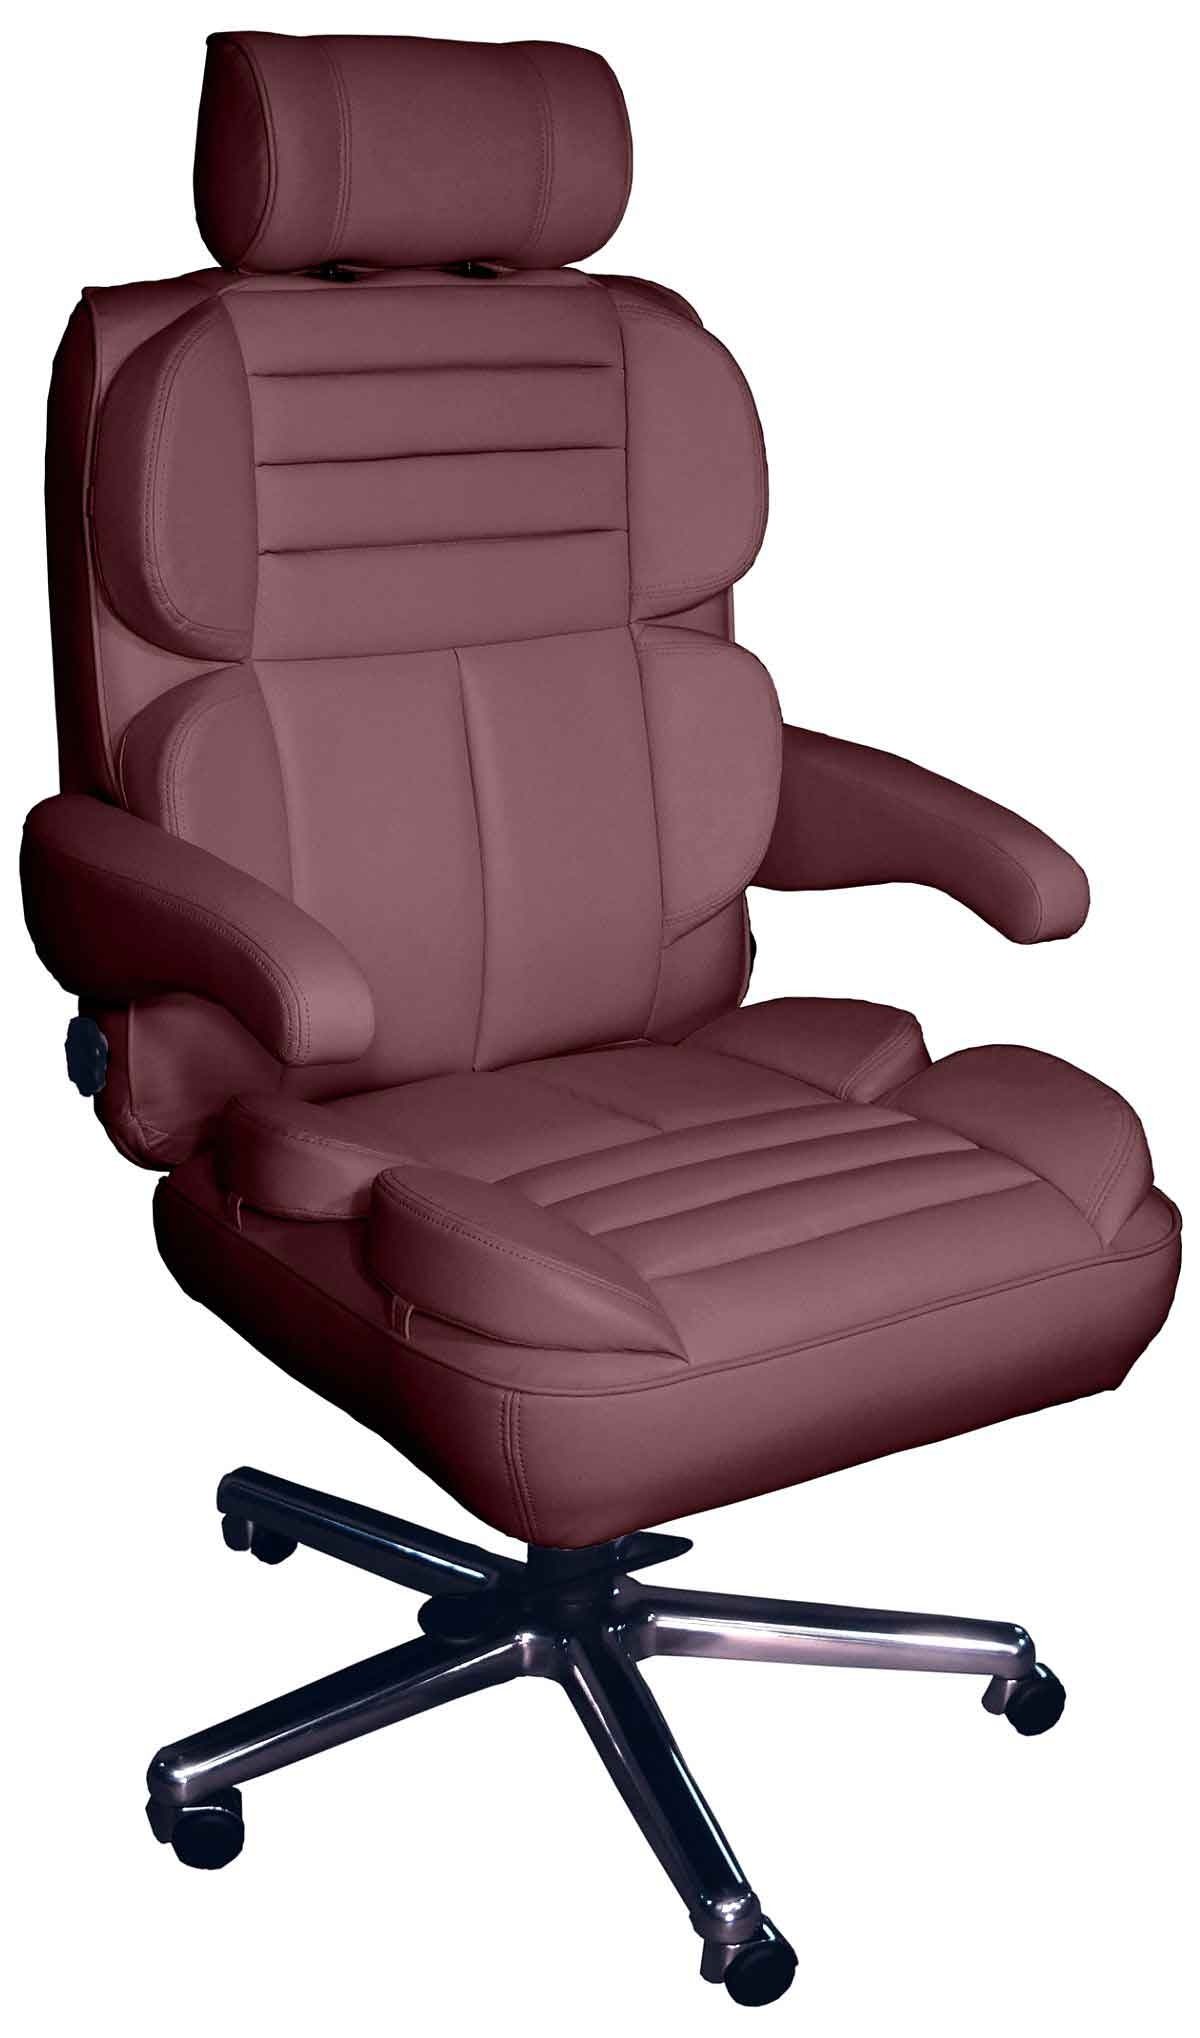 12 Big And Tall Office Chairs To Include In Your Office With Regard To Fashionable Executive Office Chairs With Adjustable Arms (View 1 of 20)